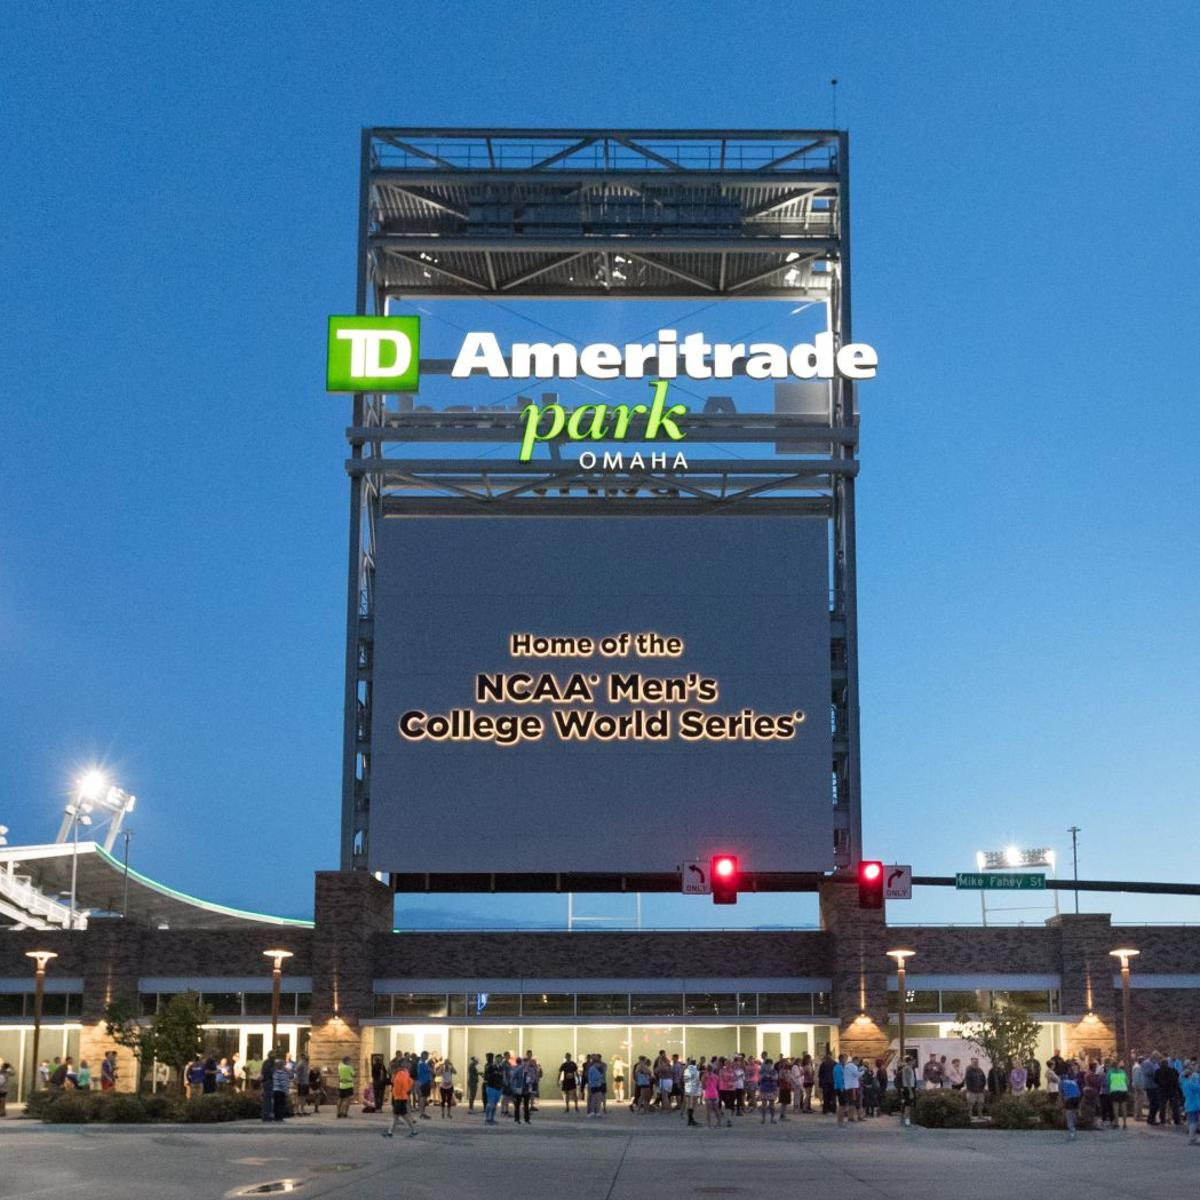 TD Ameritrade Park will add clear bag policy next spring for